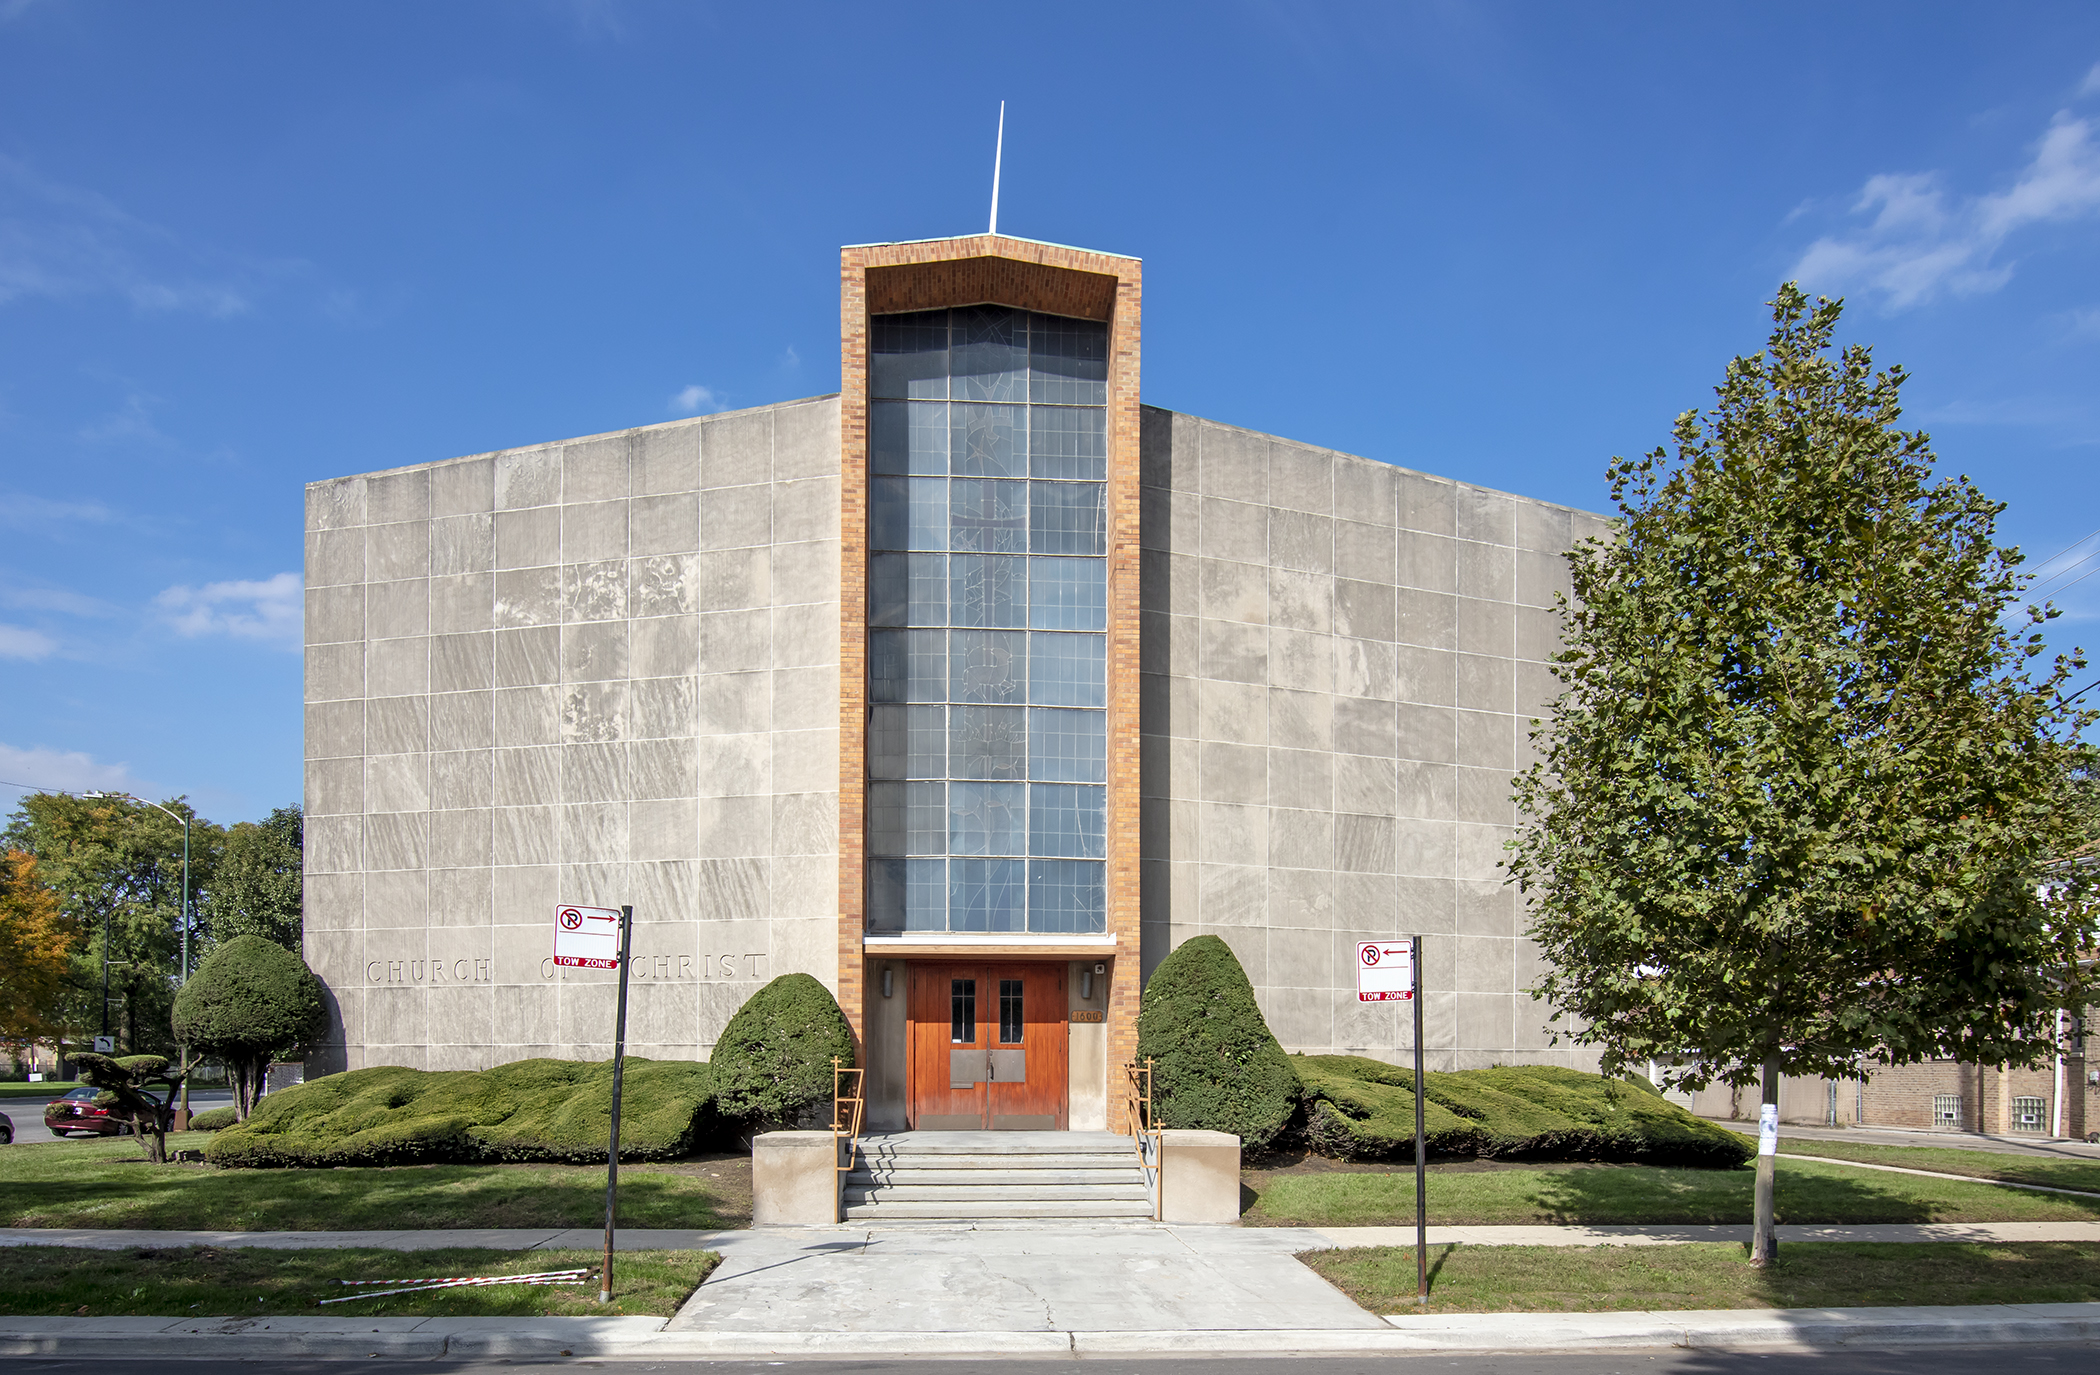 Stony Island Church of Christ, 1600 E. 84th St.: This small, modernist church is located next to bustling Stony Island Avenue. It was designed by Ray Stuermer, an architect who once was chief of design for industrial designer Raymond Loewy.